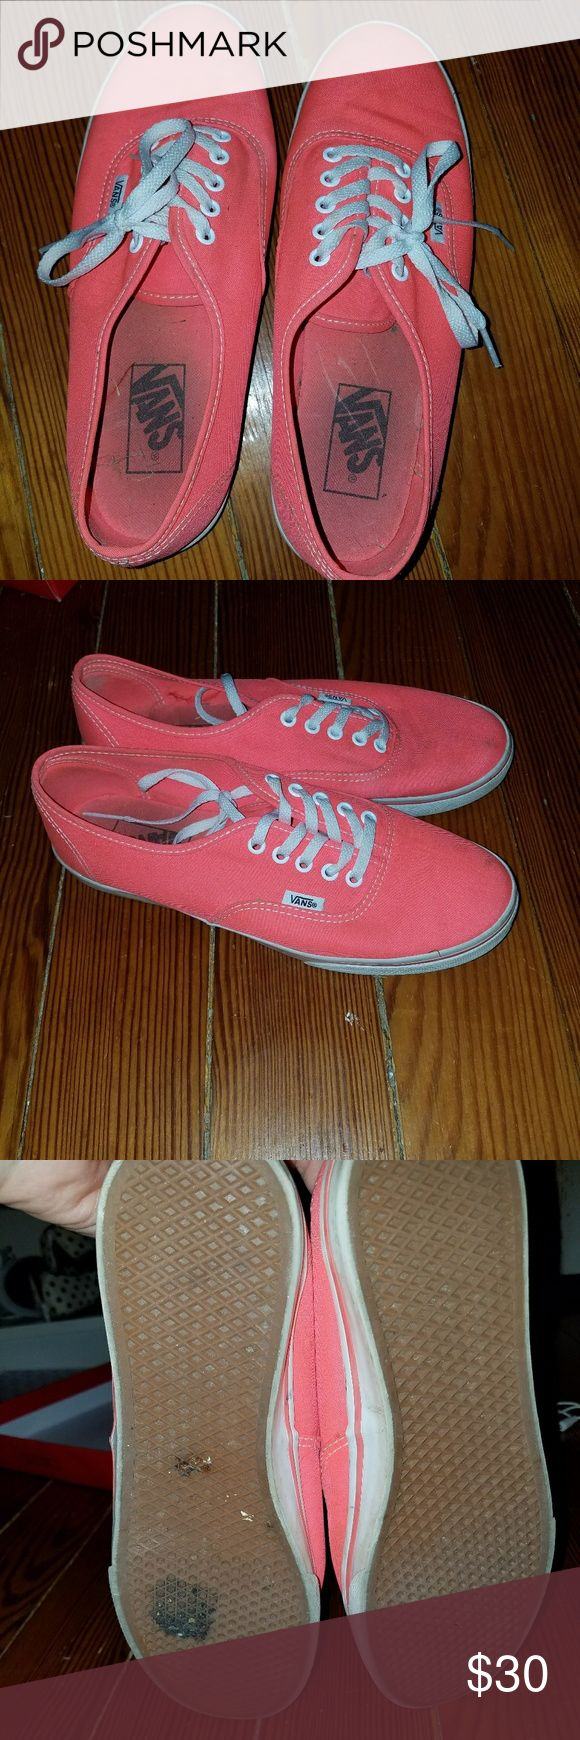 Coral Vans These shoes are so pretty and the color is really bright in person!! I love these but they are too small for me now! They have been worn but not for that long, they have been sitting in my closet unworn for a while now since they are too small.  They go very well with a cute dress!! They still have a lot of wear left in them, price is negotiable! Vans Shoes Sneakers